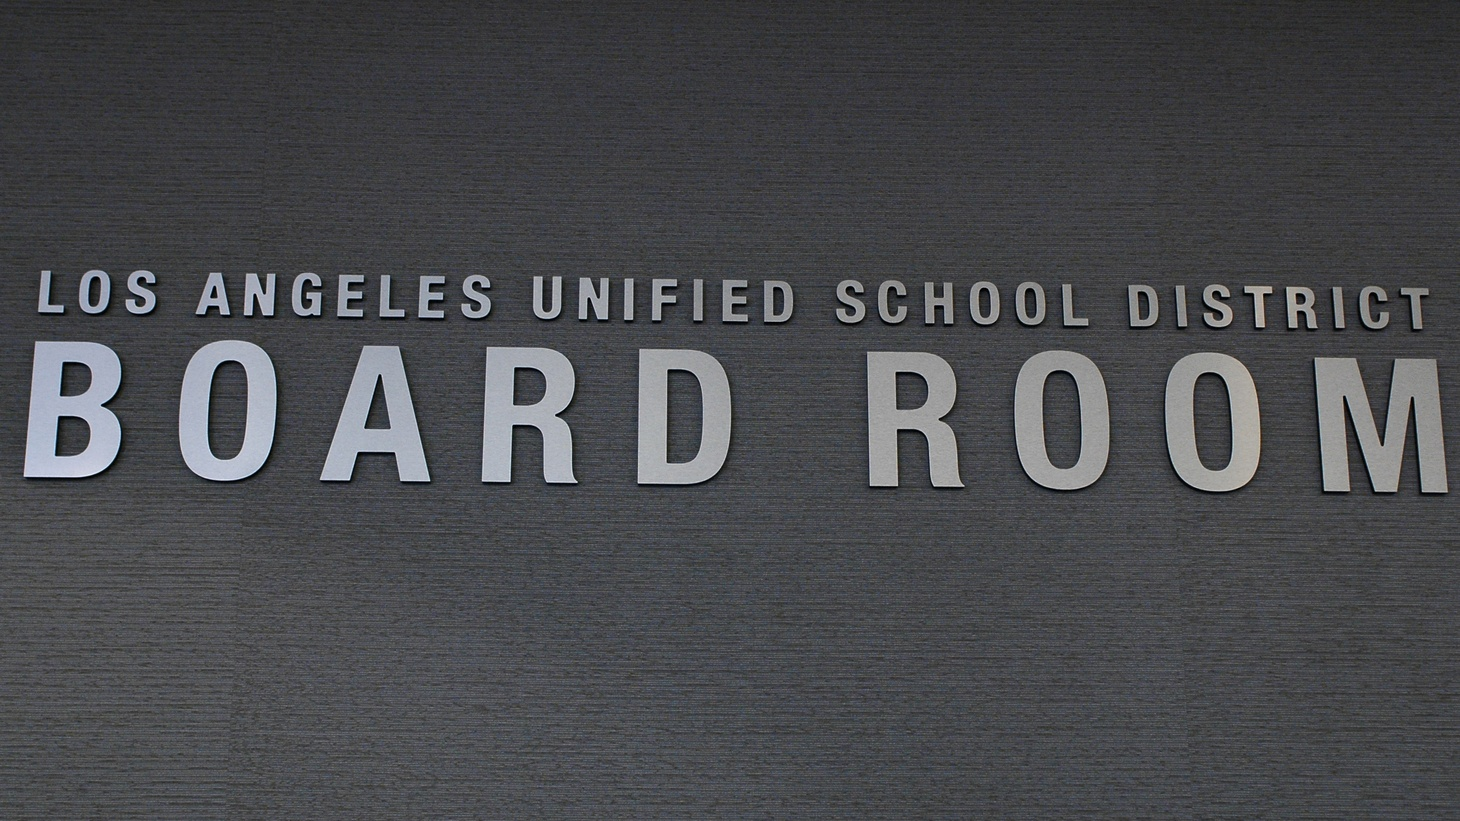 We start today with a look at the impasse between Los Angeles teachers and the school district over salaries and class sizes. Teachers are planning to boycott faculty meetings this afternoon, but the superintendent says that's illegal. Could the dispute escalate to a full-on strike?